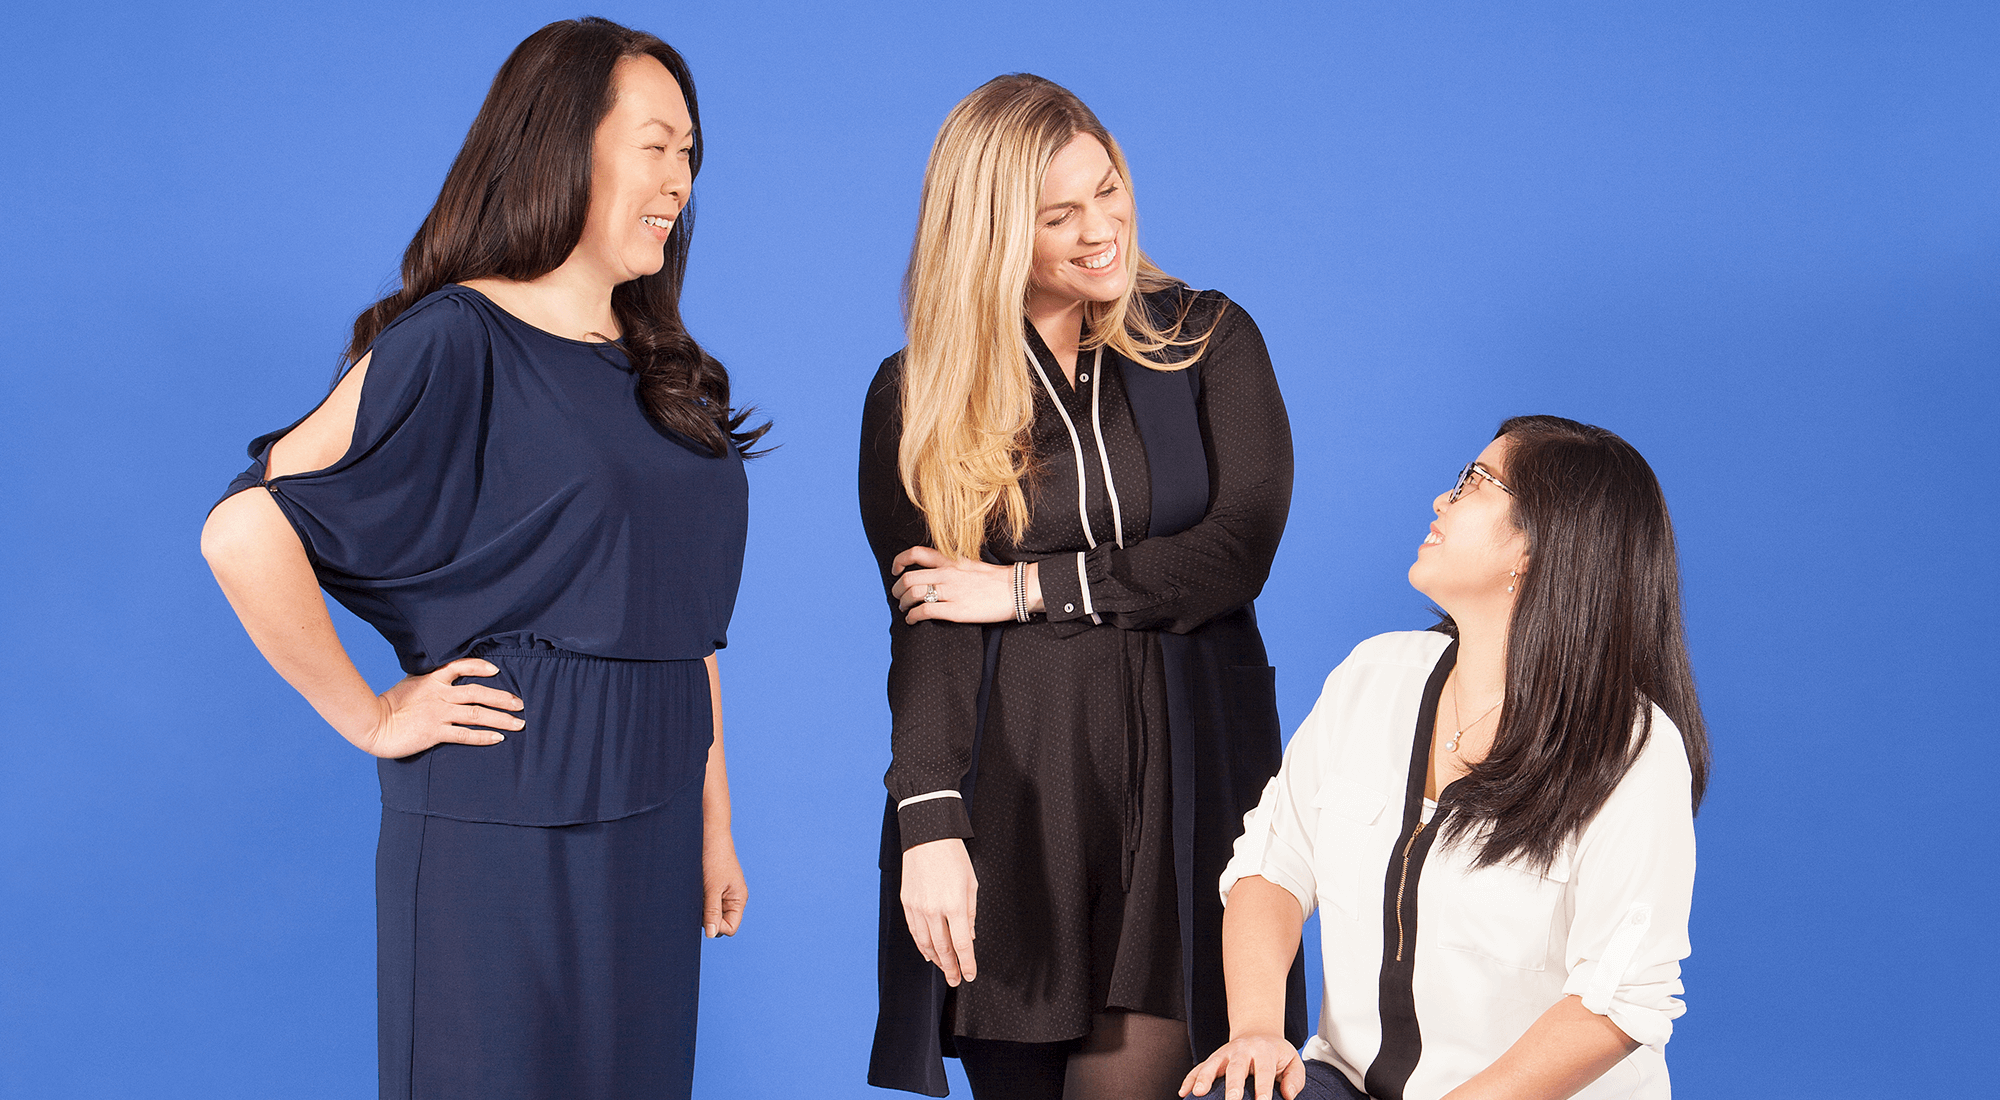 These women entrepreneurs are boldly going where men fear to tread